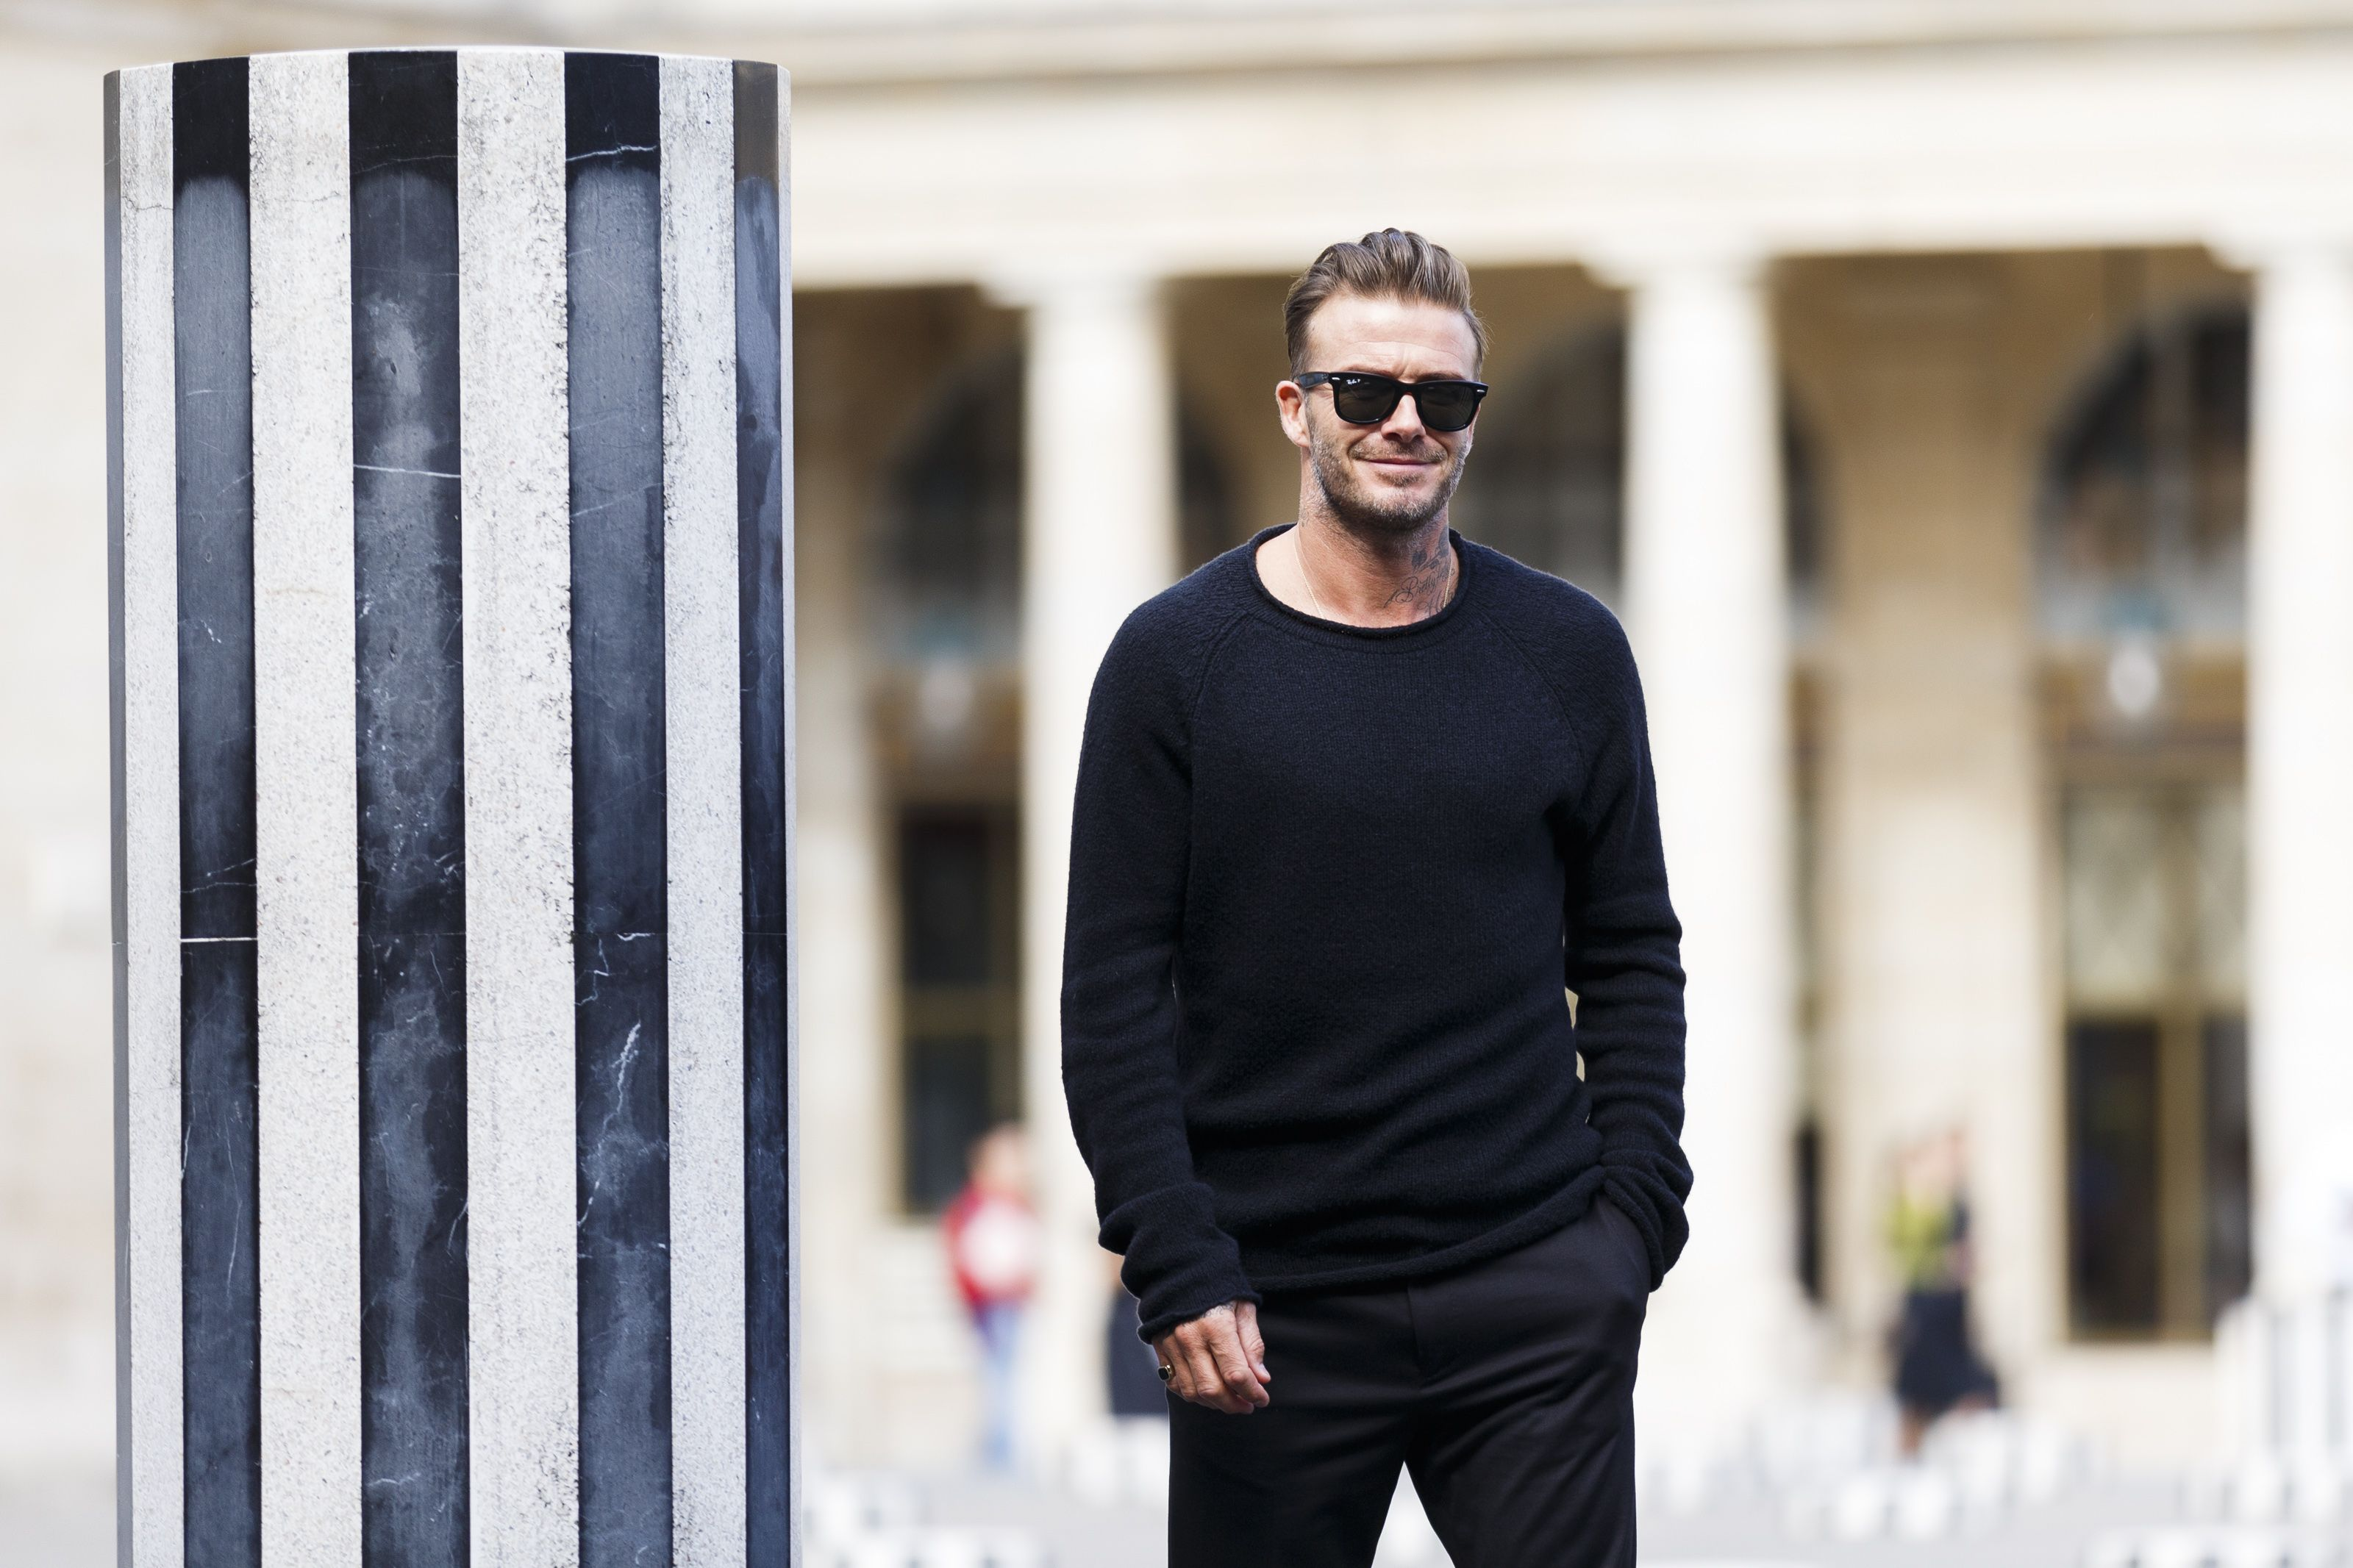 Times David Beckham Showed You How To Dress Properly In 16